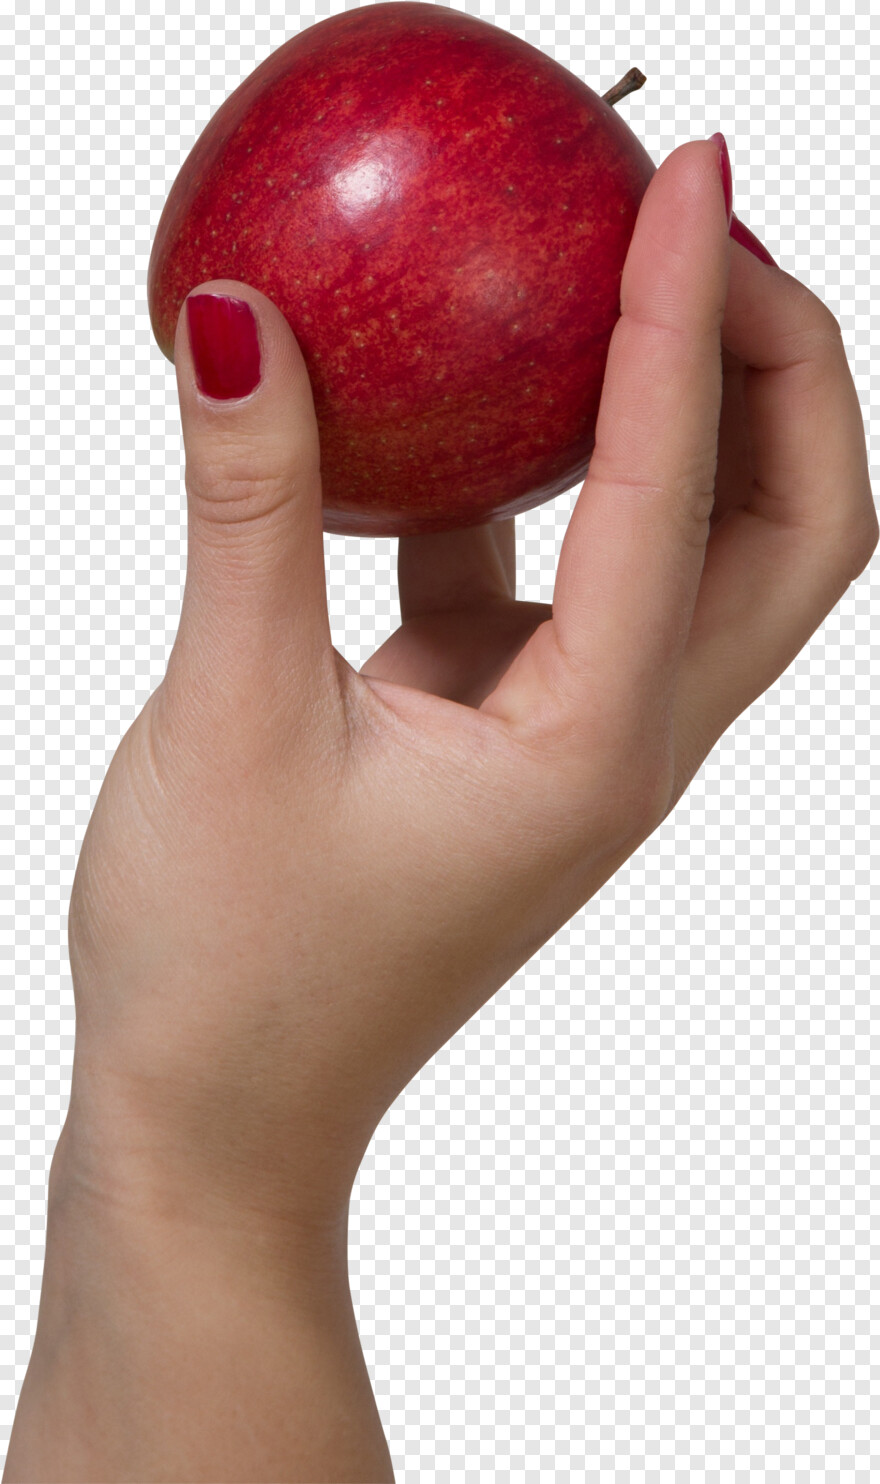 Hand Holding Something A Hand Holding A Red Apple Png Image Hd Png Download 2055x3082 9055429 Png Image Pngjoy Discover and download free hand holding png images on pngitem. red apple png image hd png download